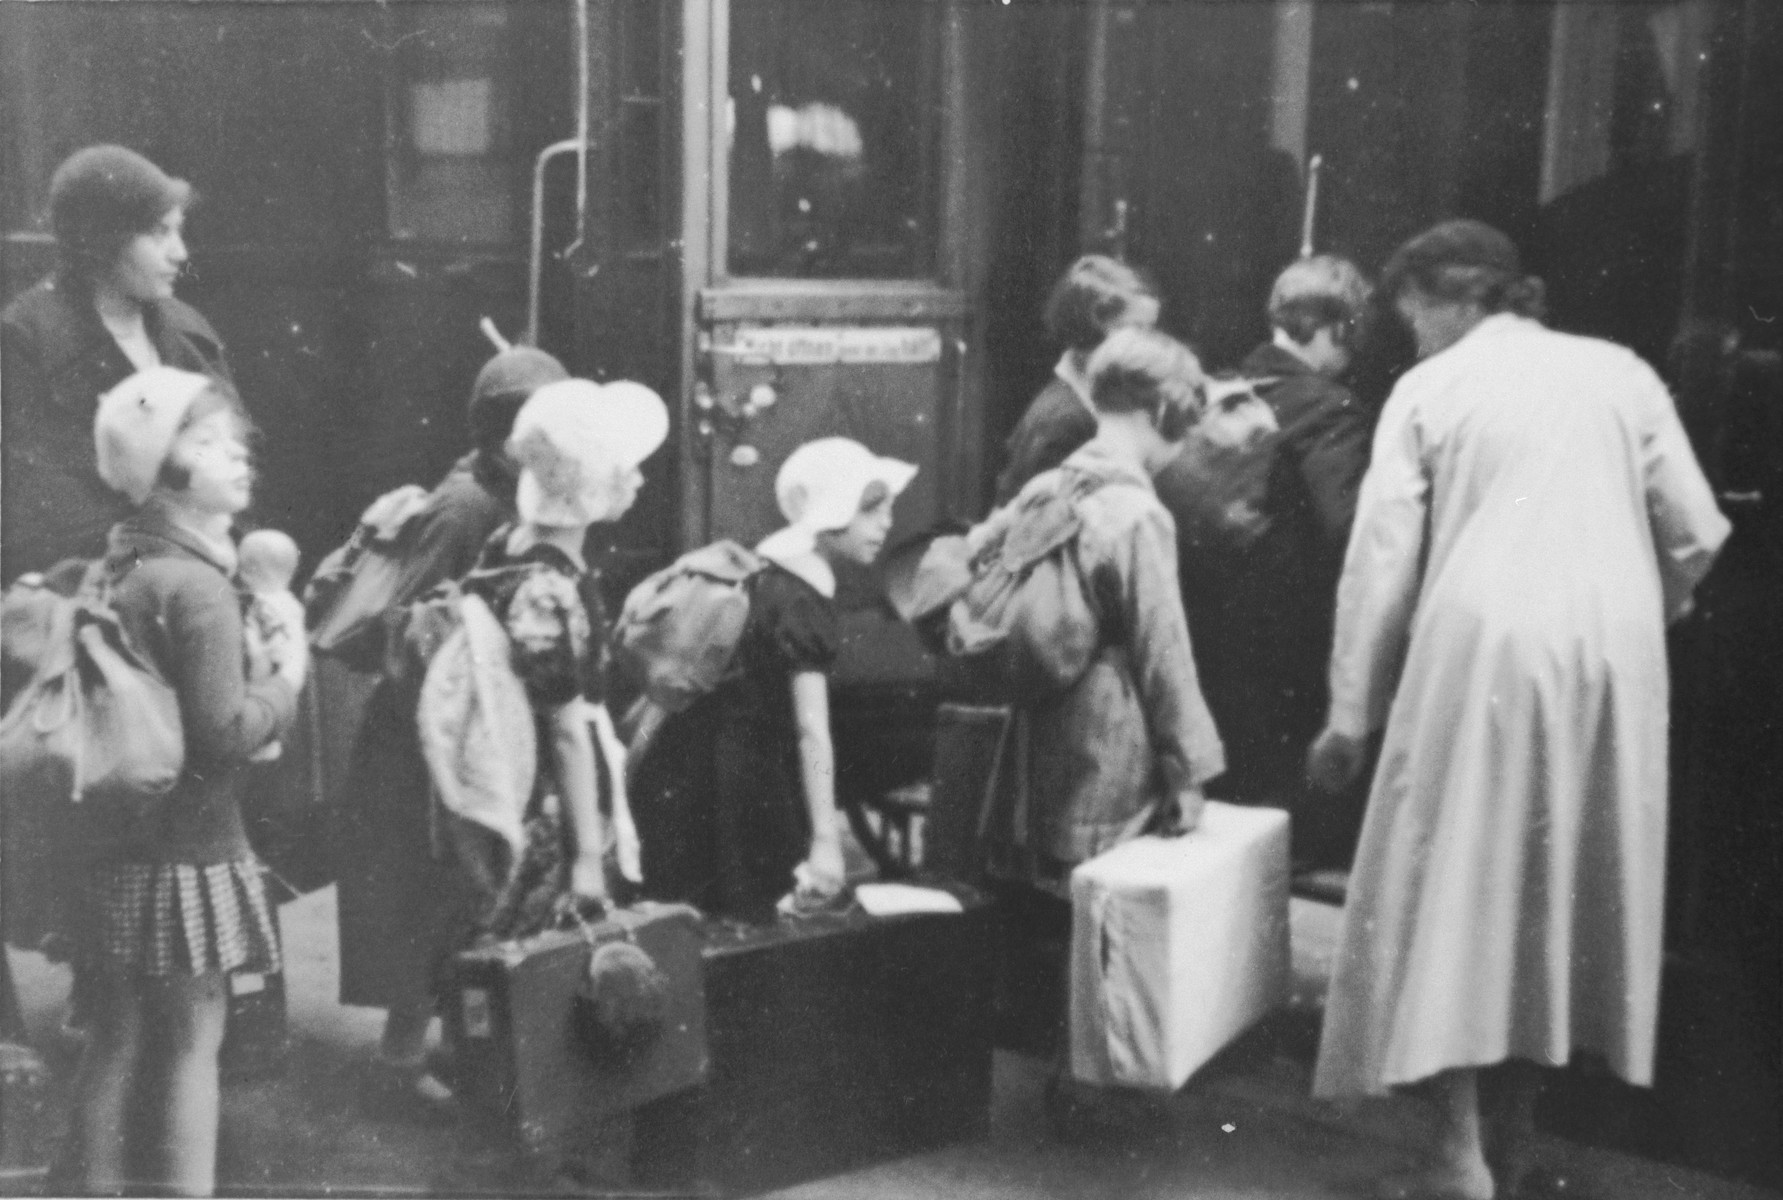 Jewish children from Germany who are on their way to a Kinderlager [children's recreational summer camp] in Horserod, Denmark, board the train with their luggage.    In 1935-36 Norbert Wollheim was involved in organizing groups of German Jewish youth to attend a summer camp in Denmark.